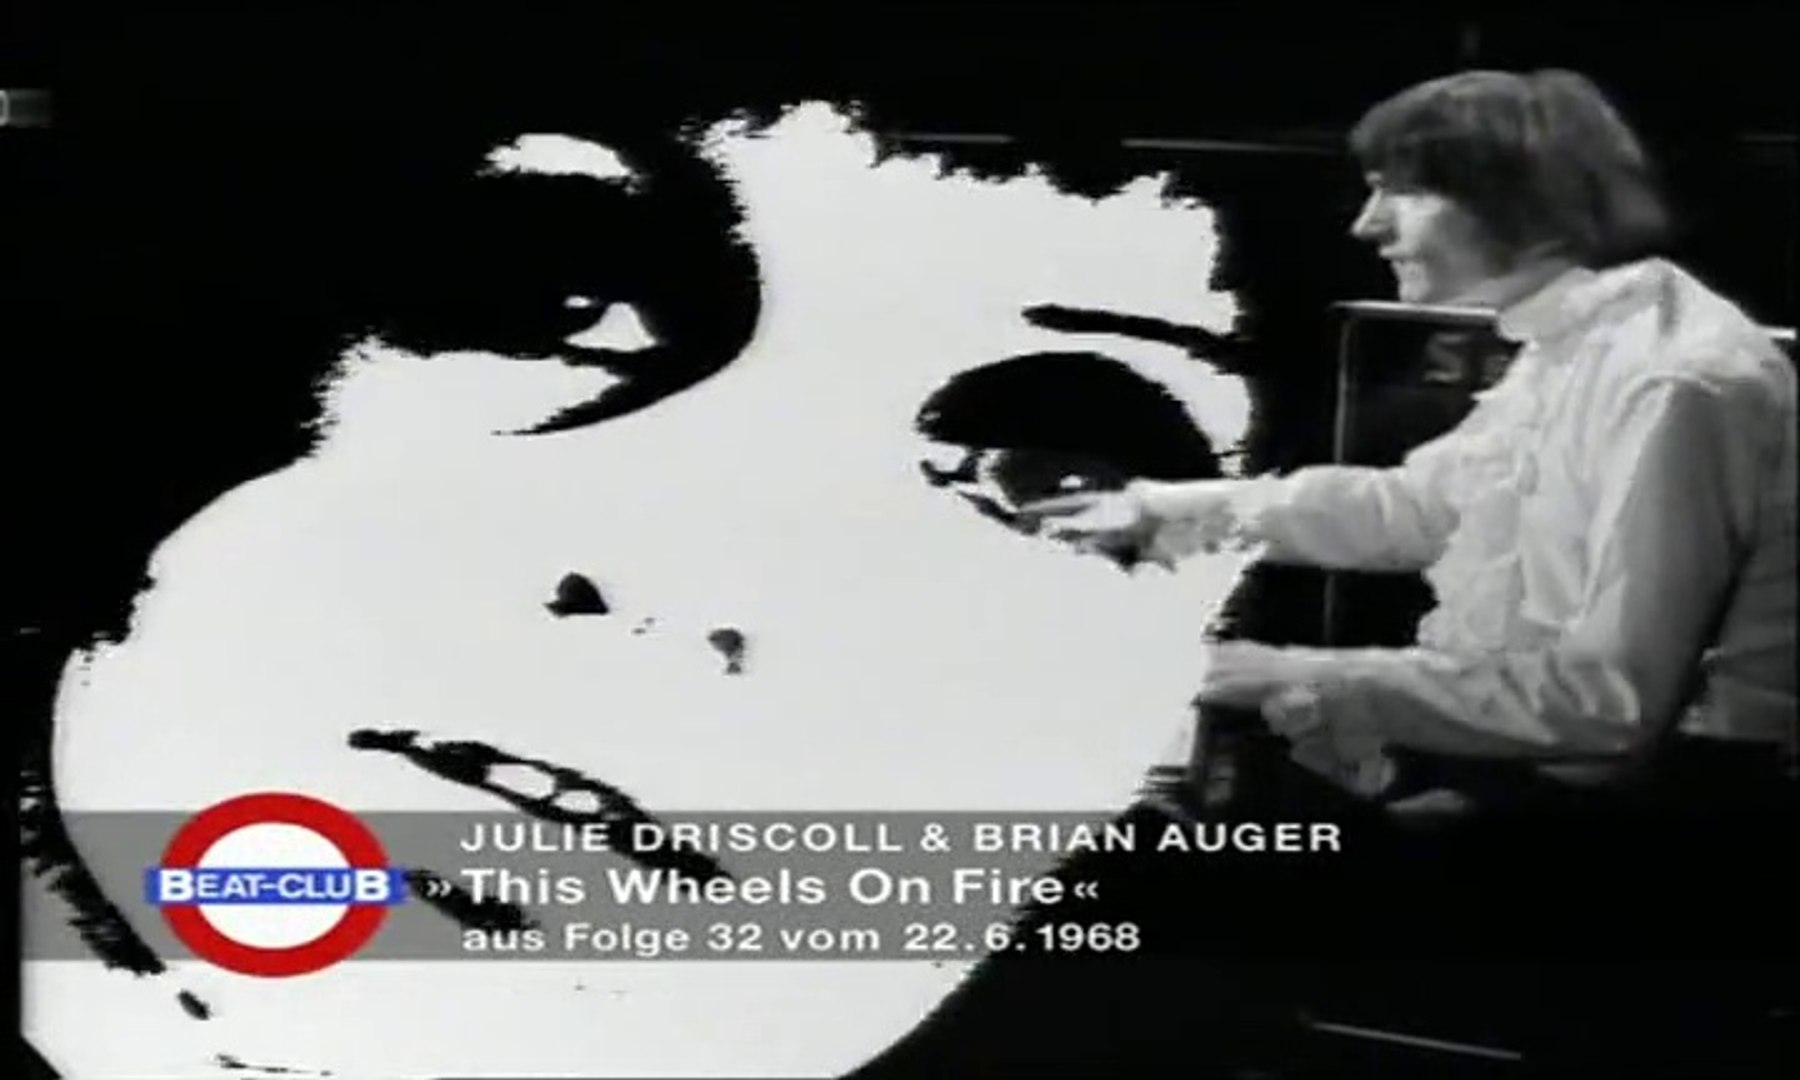 Julie Driscoll & Brian Auger - This Wheel's On Fire 1968